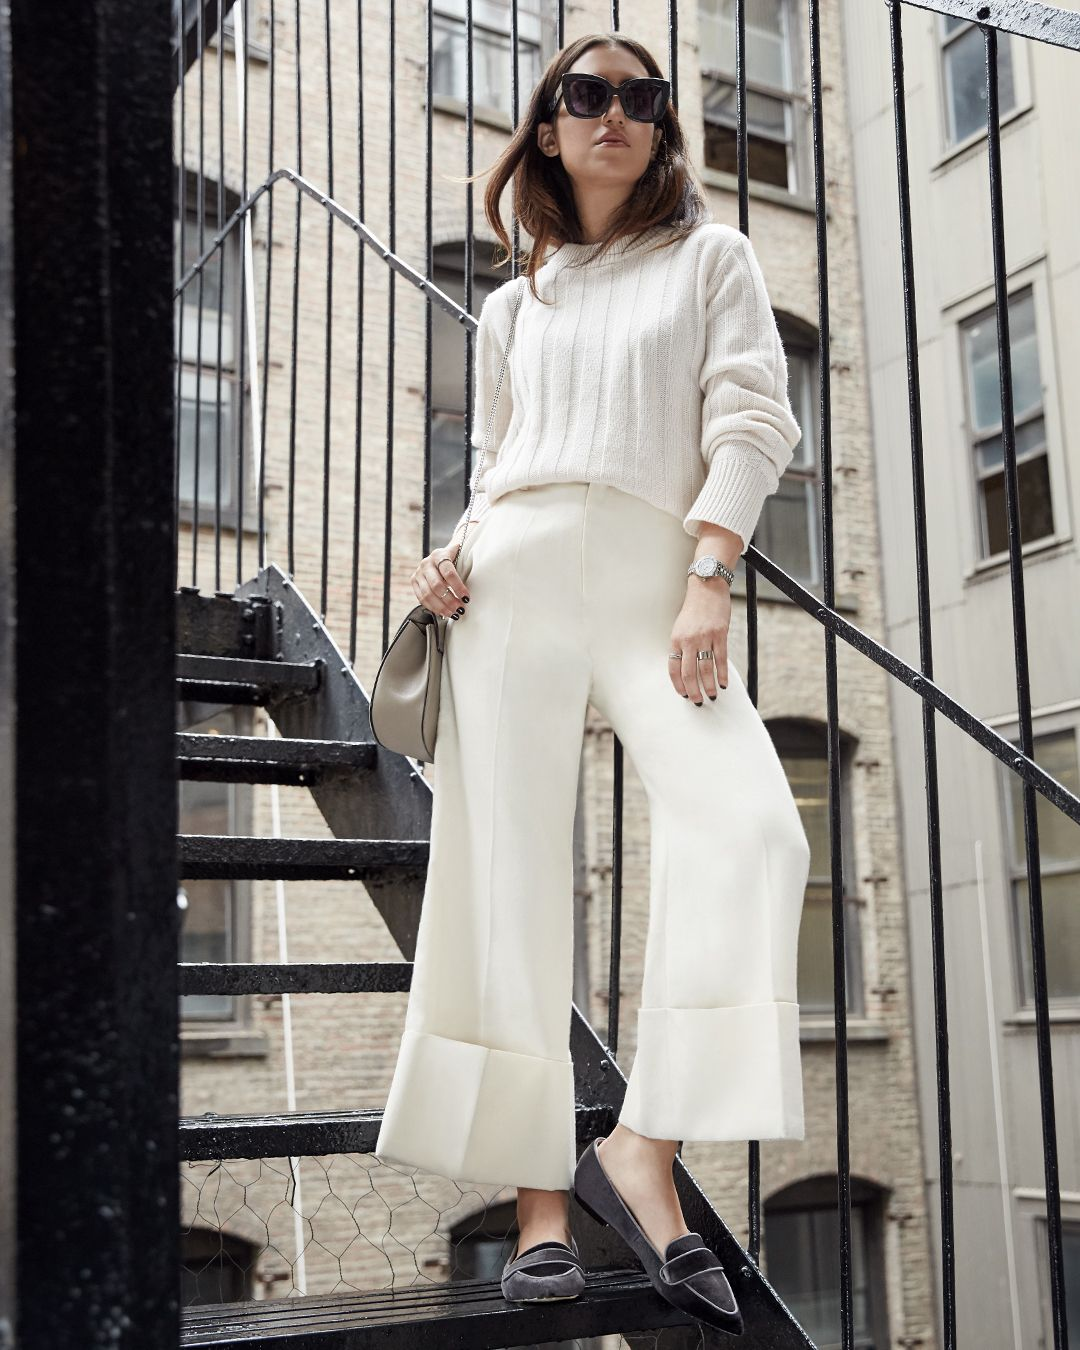 """<p>Ivory-on-ivory always looks chic.Update the monochrome look for Fall '16 with a pair of velvet flats—this season is all about a touch of the plush fabric.<span class=""""redactor-invisible-space"""" data-verified=""""redactor"""" data-redactor-tag=""""span"""" data-redactor-class=""""redactor-invisible-space""""></span></p><p><br></p><p><em data-redactor-tag=""""em"""" data-verified=""""redactor"""">Canvas by Lands' End Women's Crew Neck Sweater, $95,<a href=""""http://www.landsend.com/products/womens-crew-neck-sweater/id_302316?sku_0=::PRC"""" target=""""_blank"""">landsend.com</a>; Canvas by Lands' End Velvet Skimmer Shoes, $75, <a href=""""http://www.landsend.com/products/womens-velvet-skimmer-shoes/id_302881?sku_0=::DKC"""" target=""""_blank"""">landsend.com</a></em></p>"""